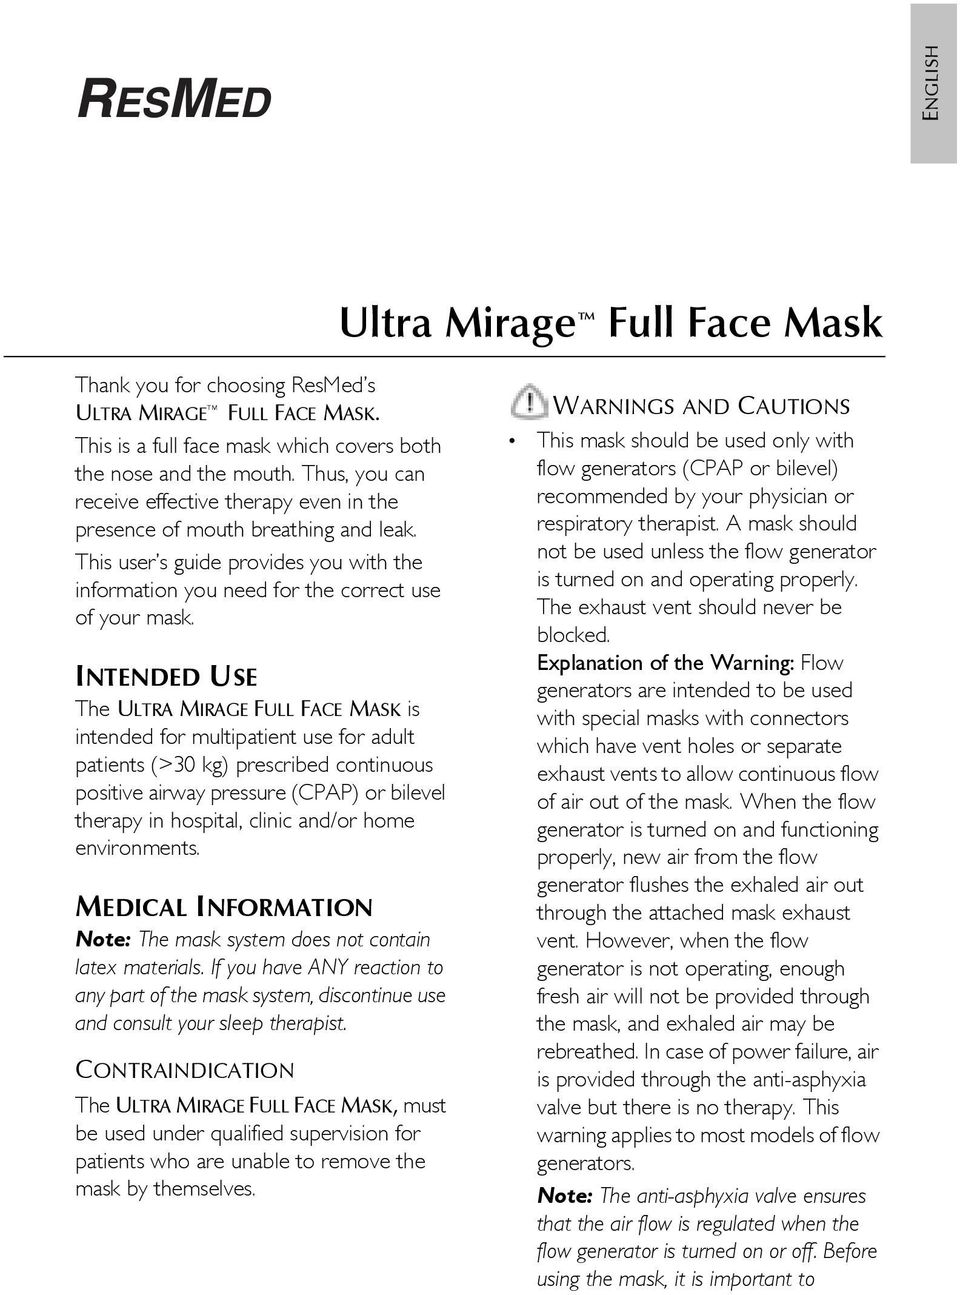 INTENDED USE The ULTRA MIRAGE FULL FACE MASK is intended for multipatient use for adult patients (>30 kg) prescribed continuous positive airway pressure (CPAP) or bilevel therapy in hospital, clinic